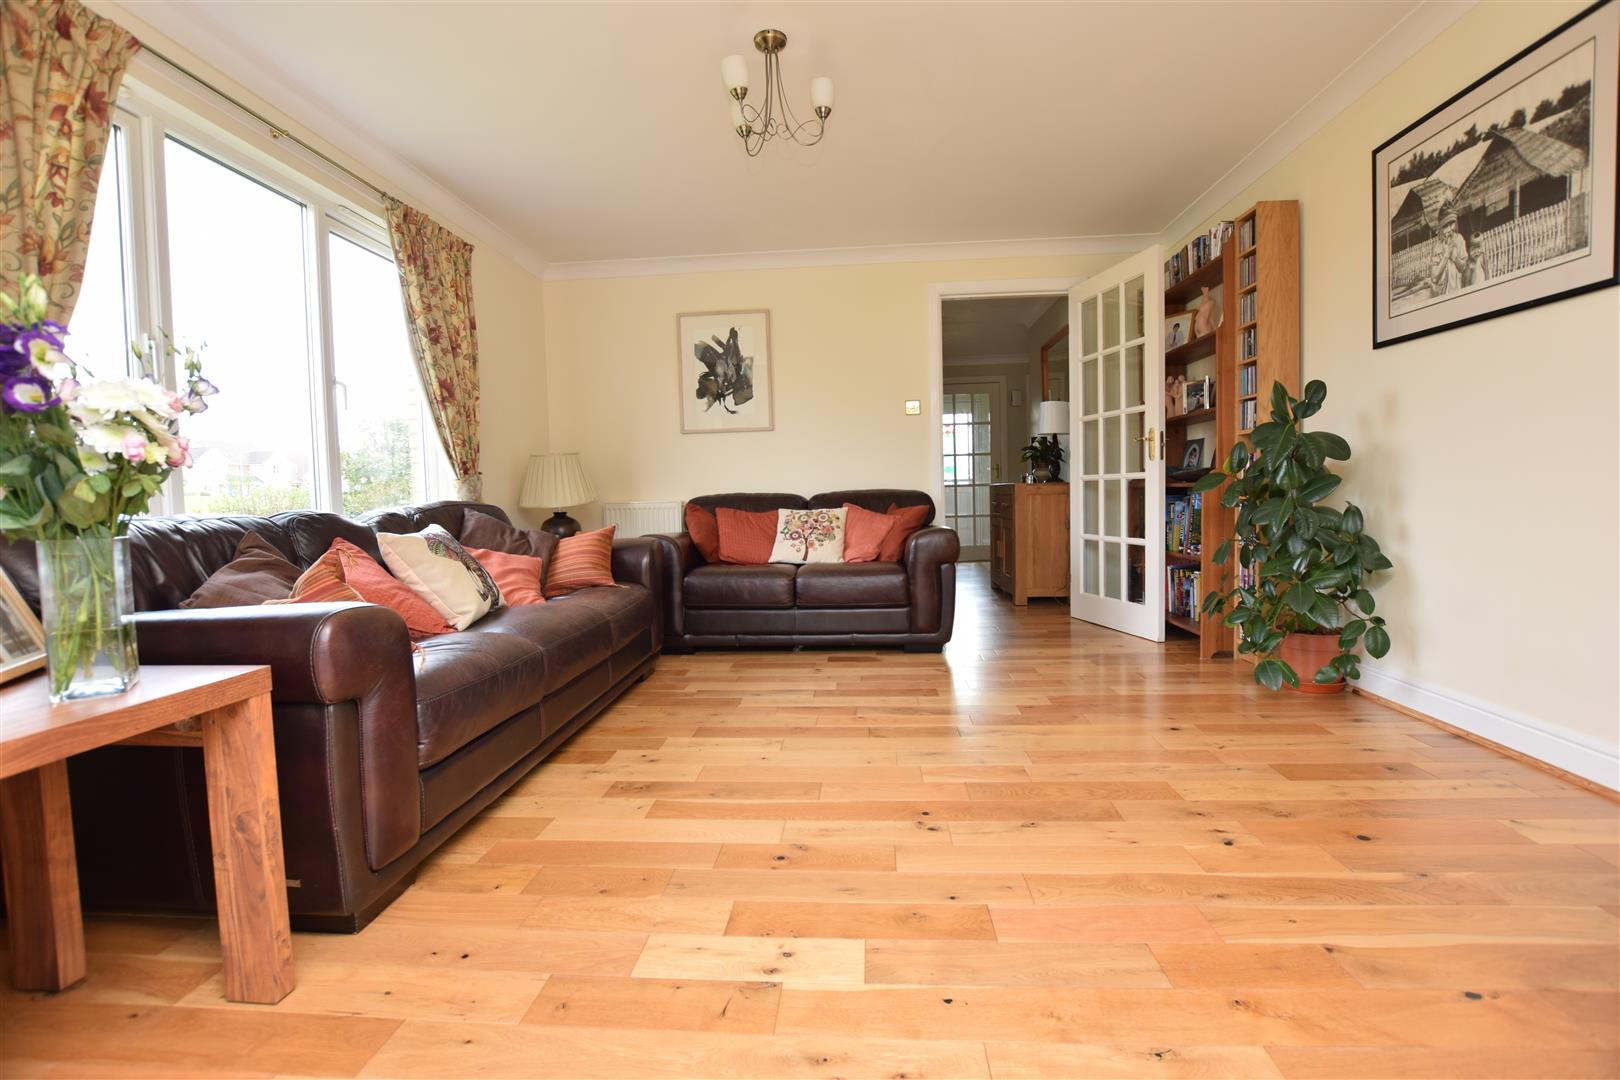 10, Fingask Place, St Madoes, Perth, Perthshire, PH2 7TX, UK